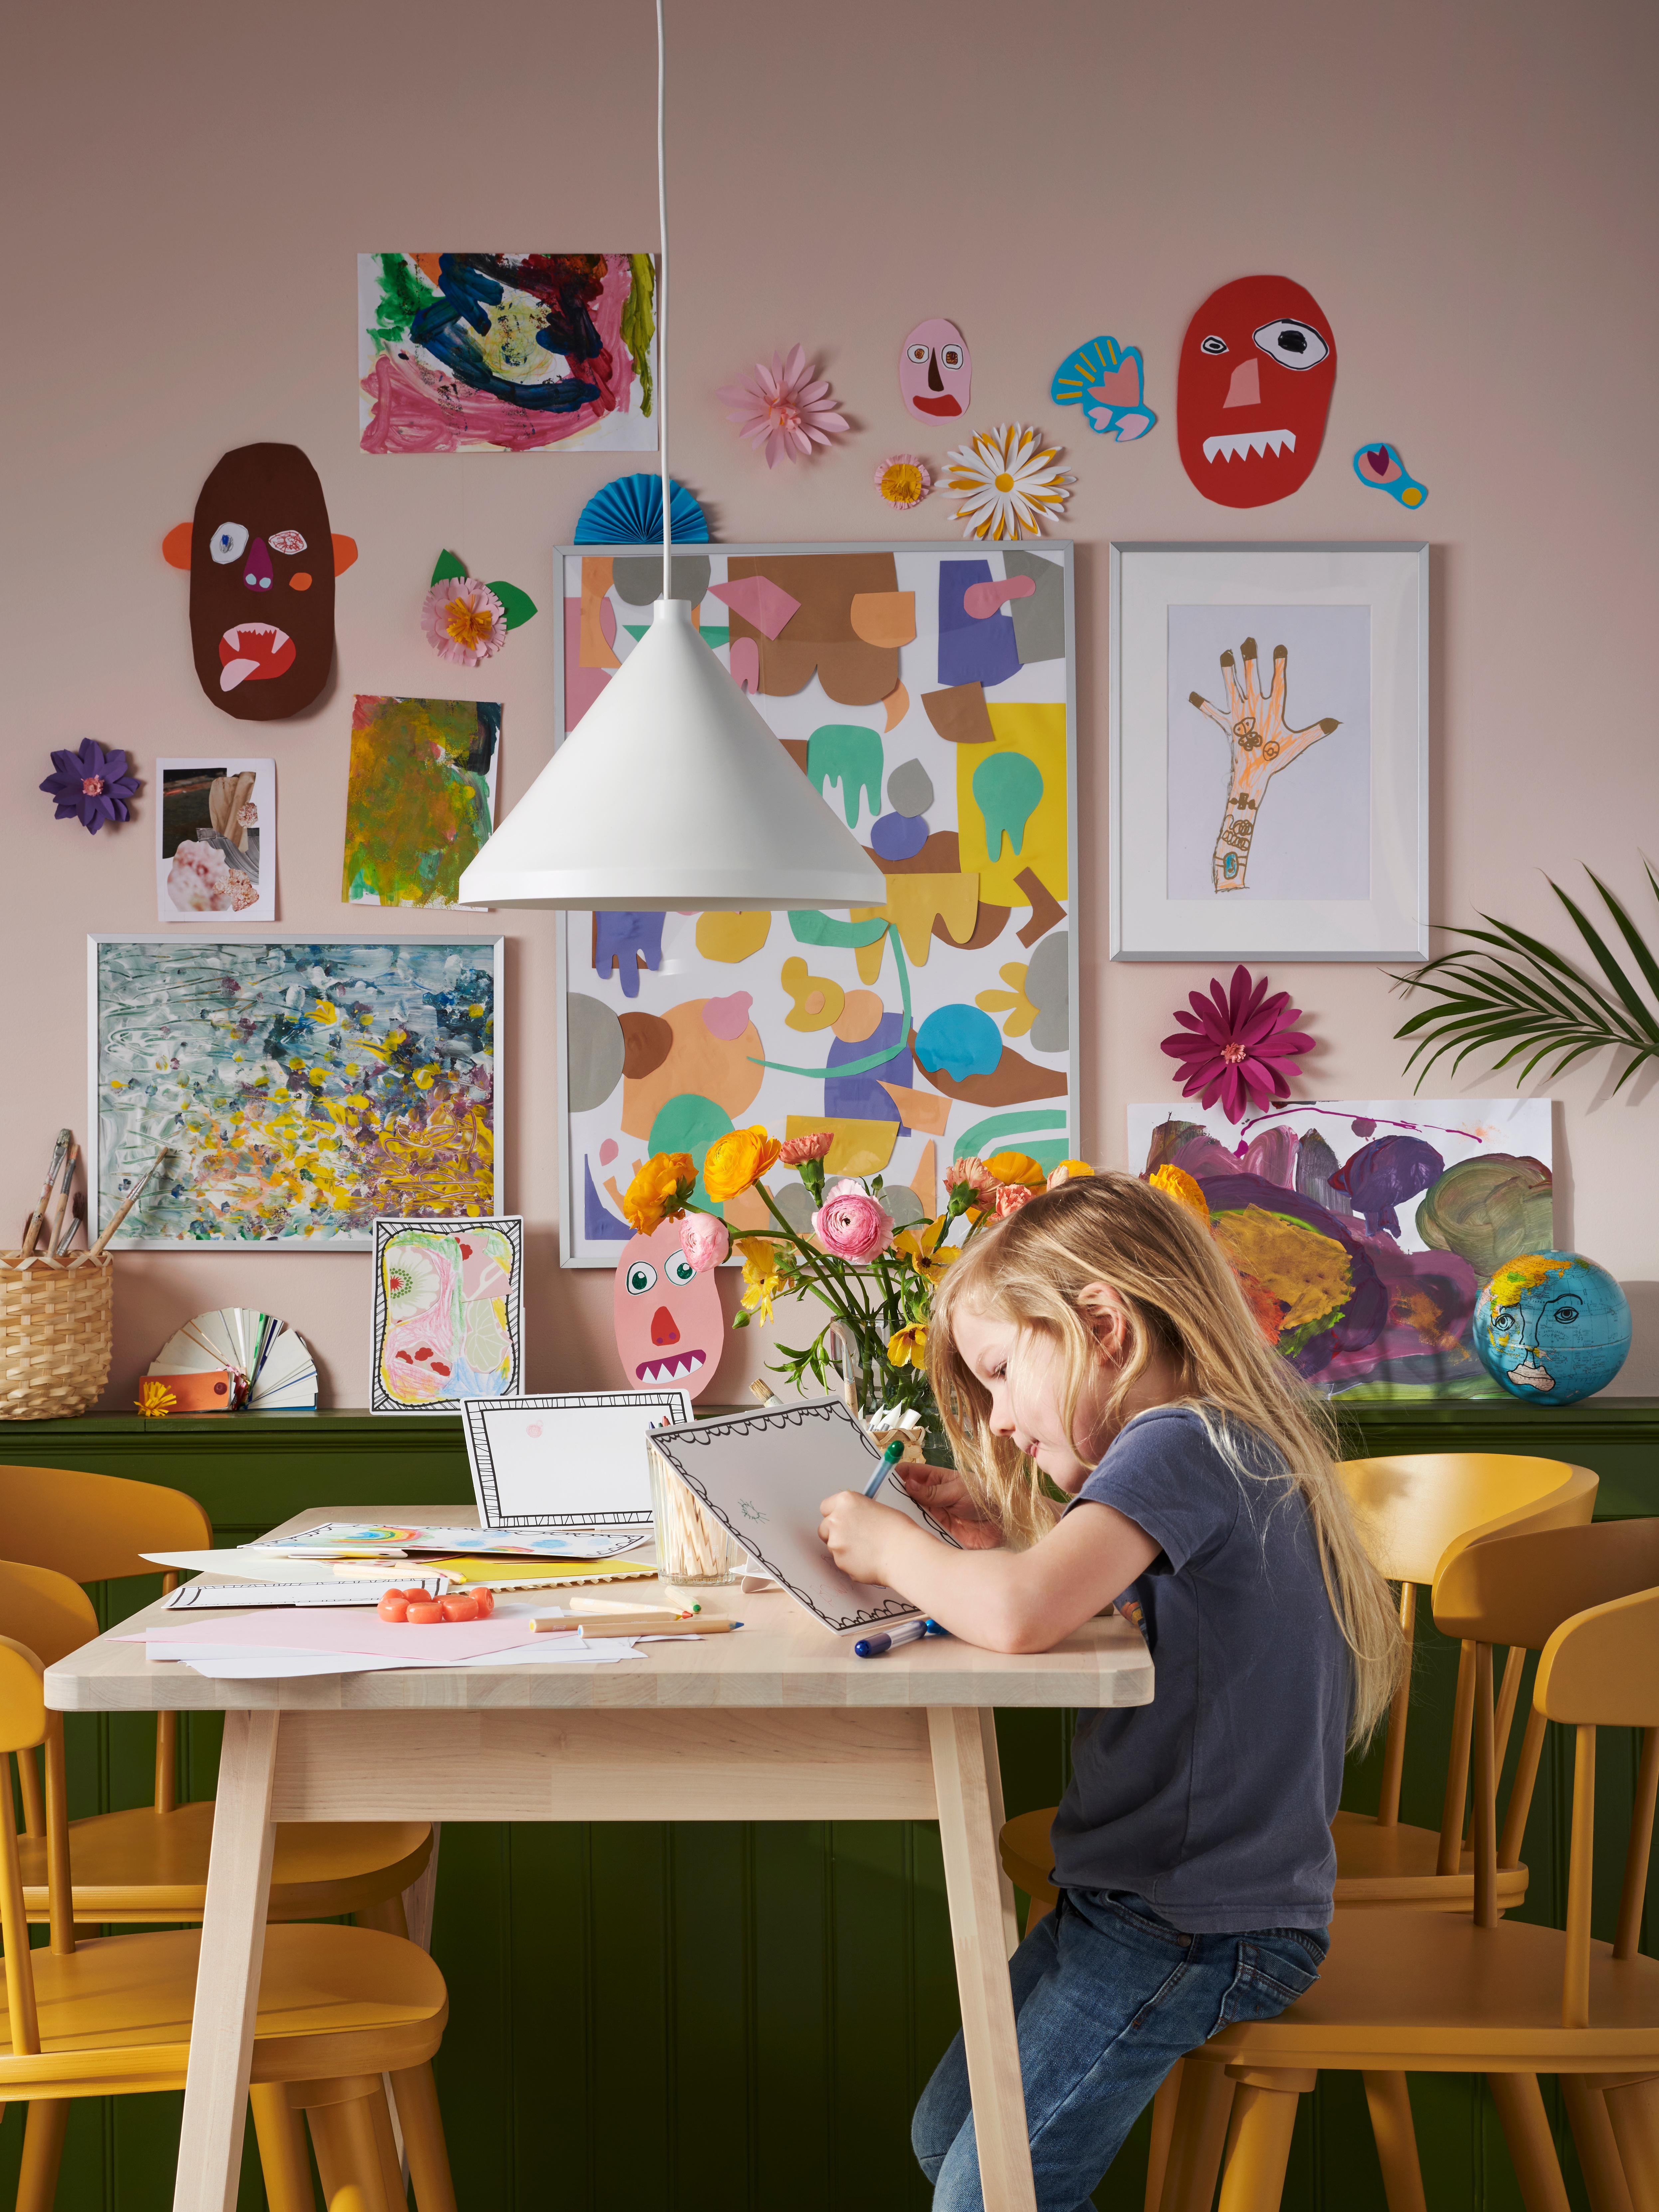 Child drawing on MÅLA framed cardboard at a wooden table with children's artwork in LOMVIKEN frames on wall behind.